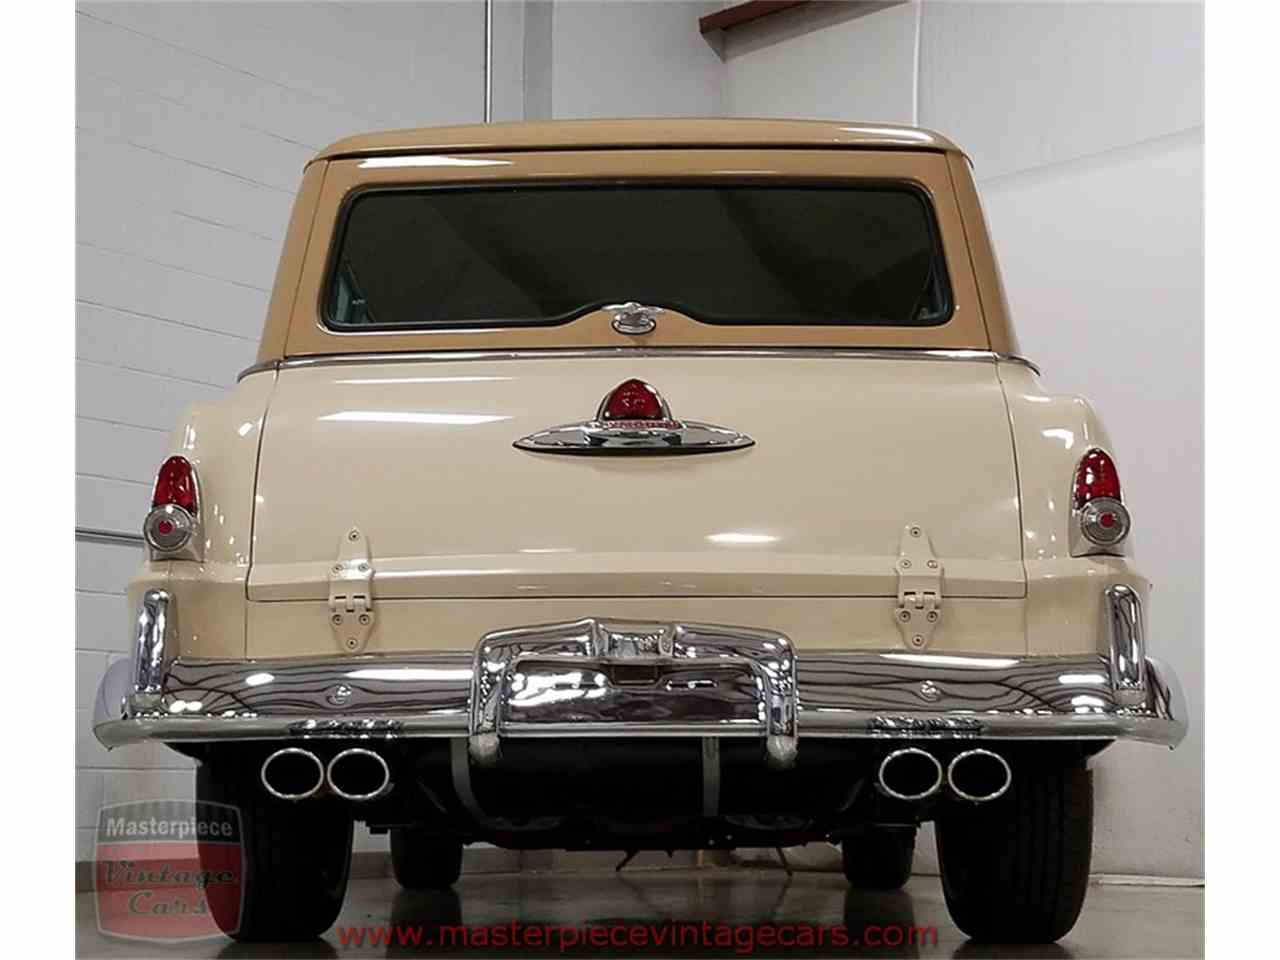 Large Picture of Classic '54 Plaza Suburban located in Whiteland Indiana Offered by Masterpiece Vintage Cars - KV49